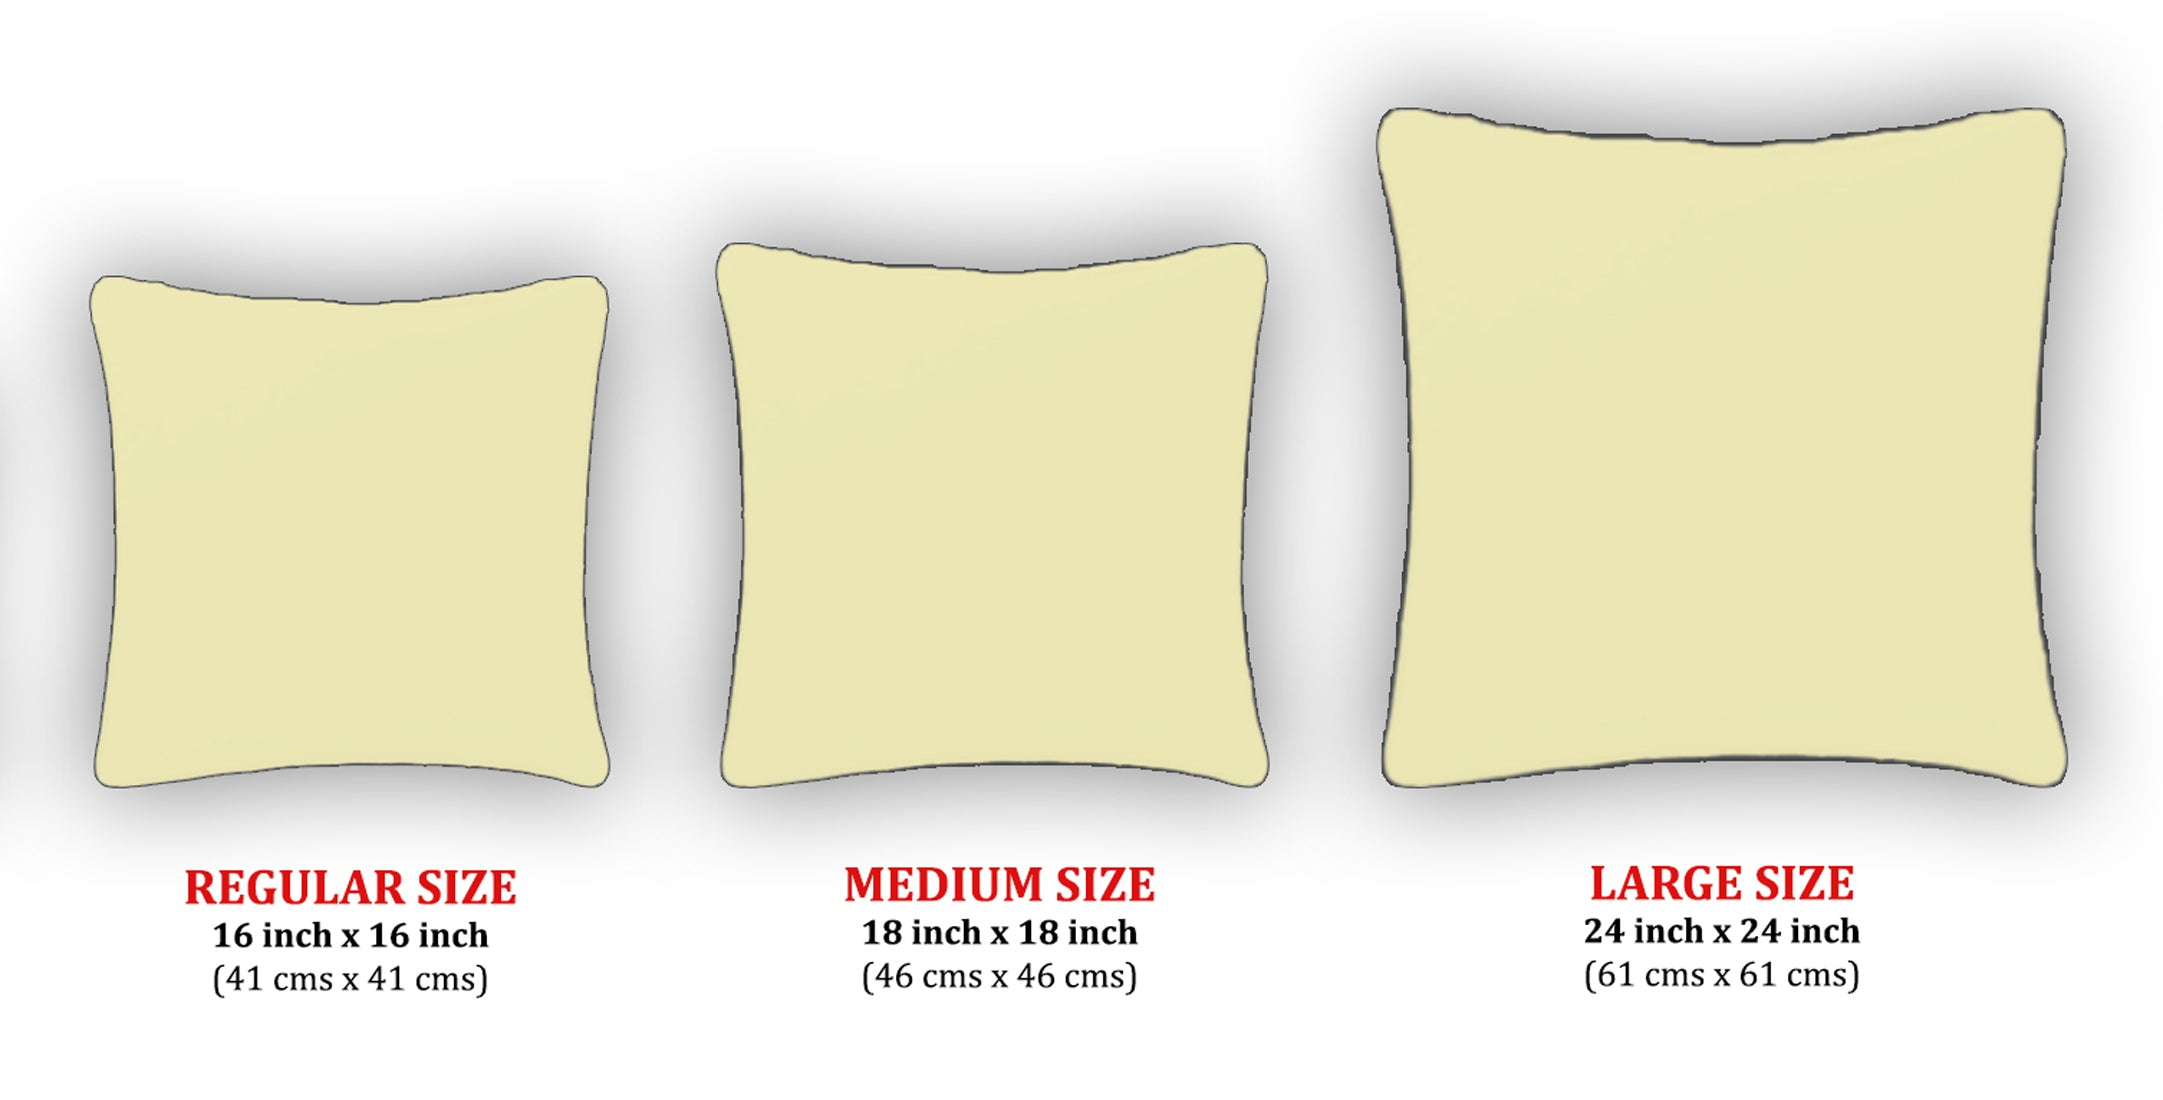 AURAVE Suede Luxurious Microfibre Cushion Cover 2 pcs for Sofa/Couch - Cream